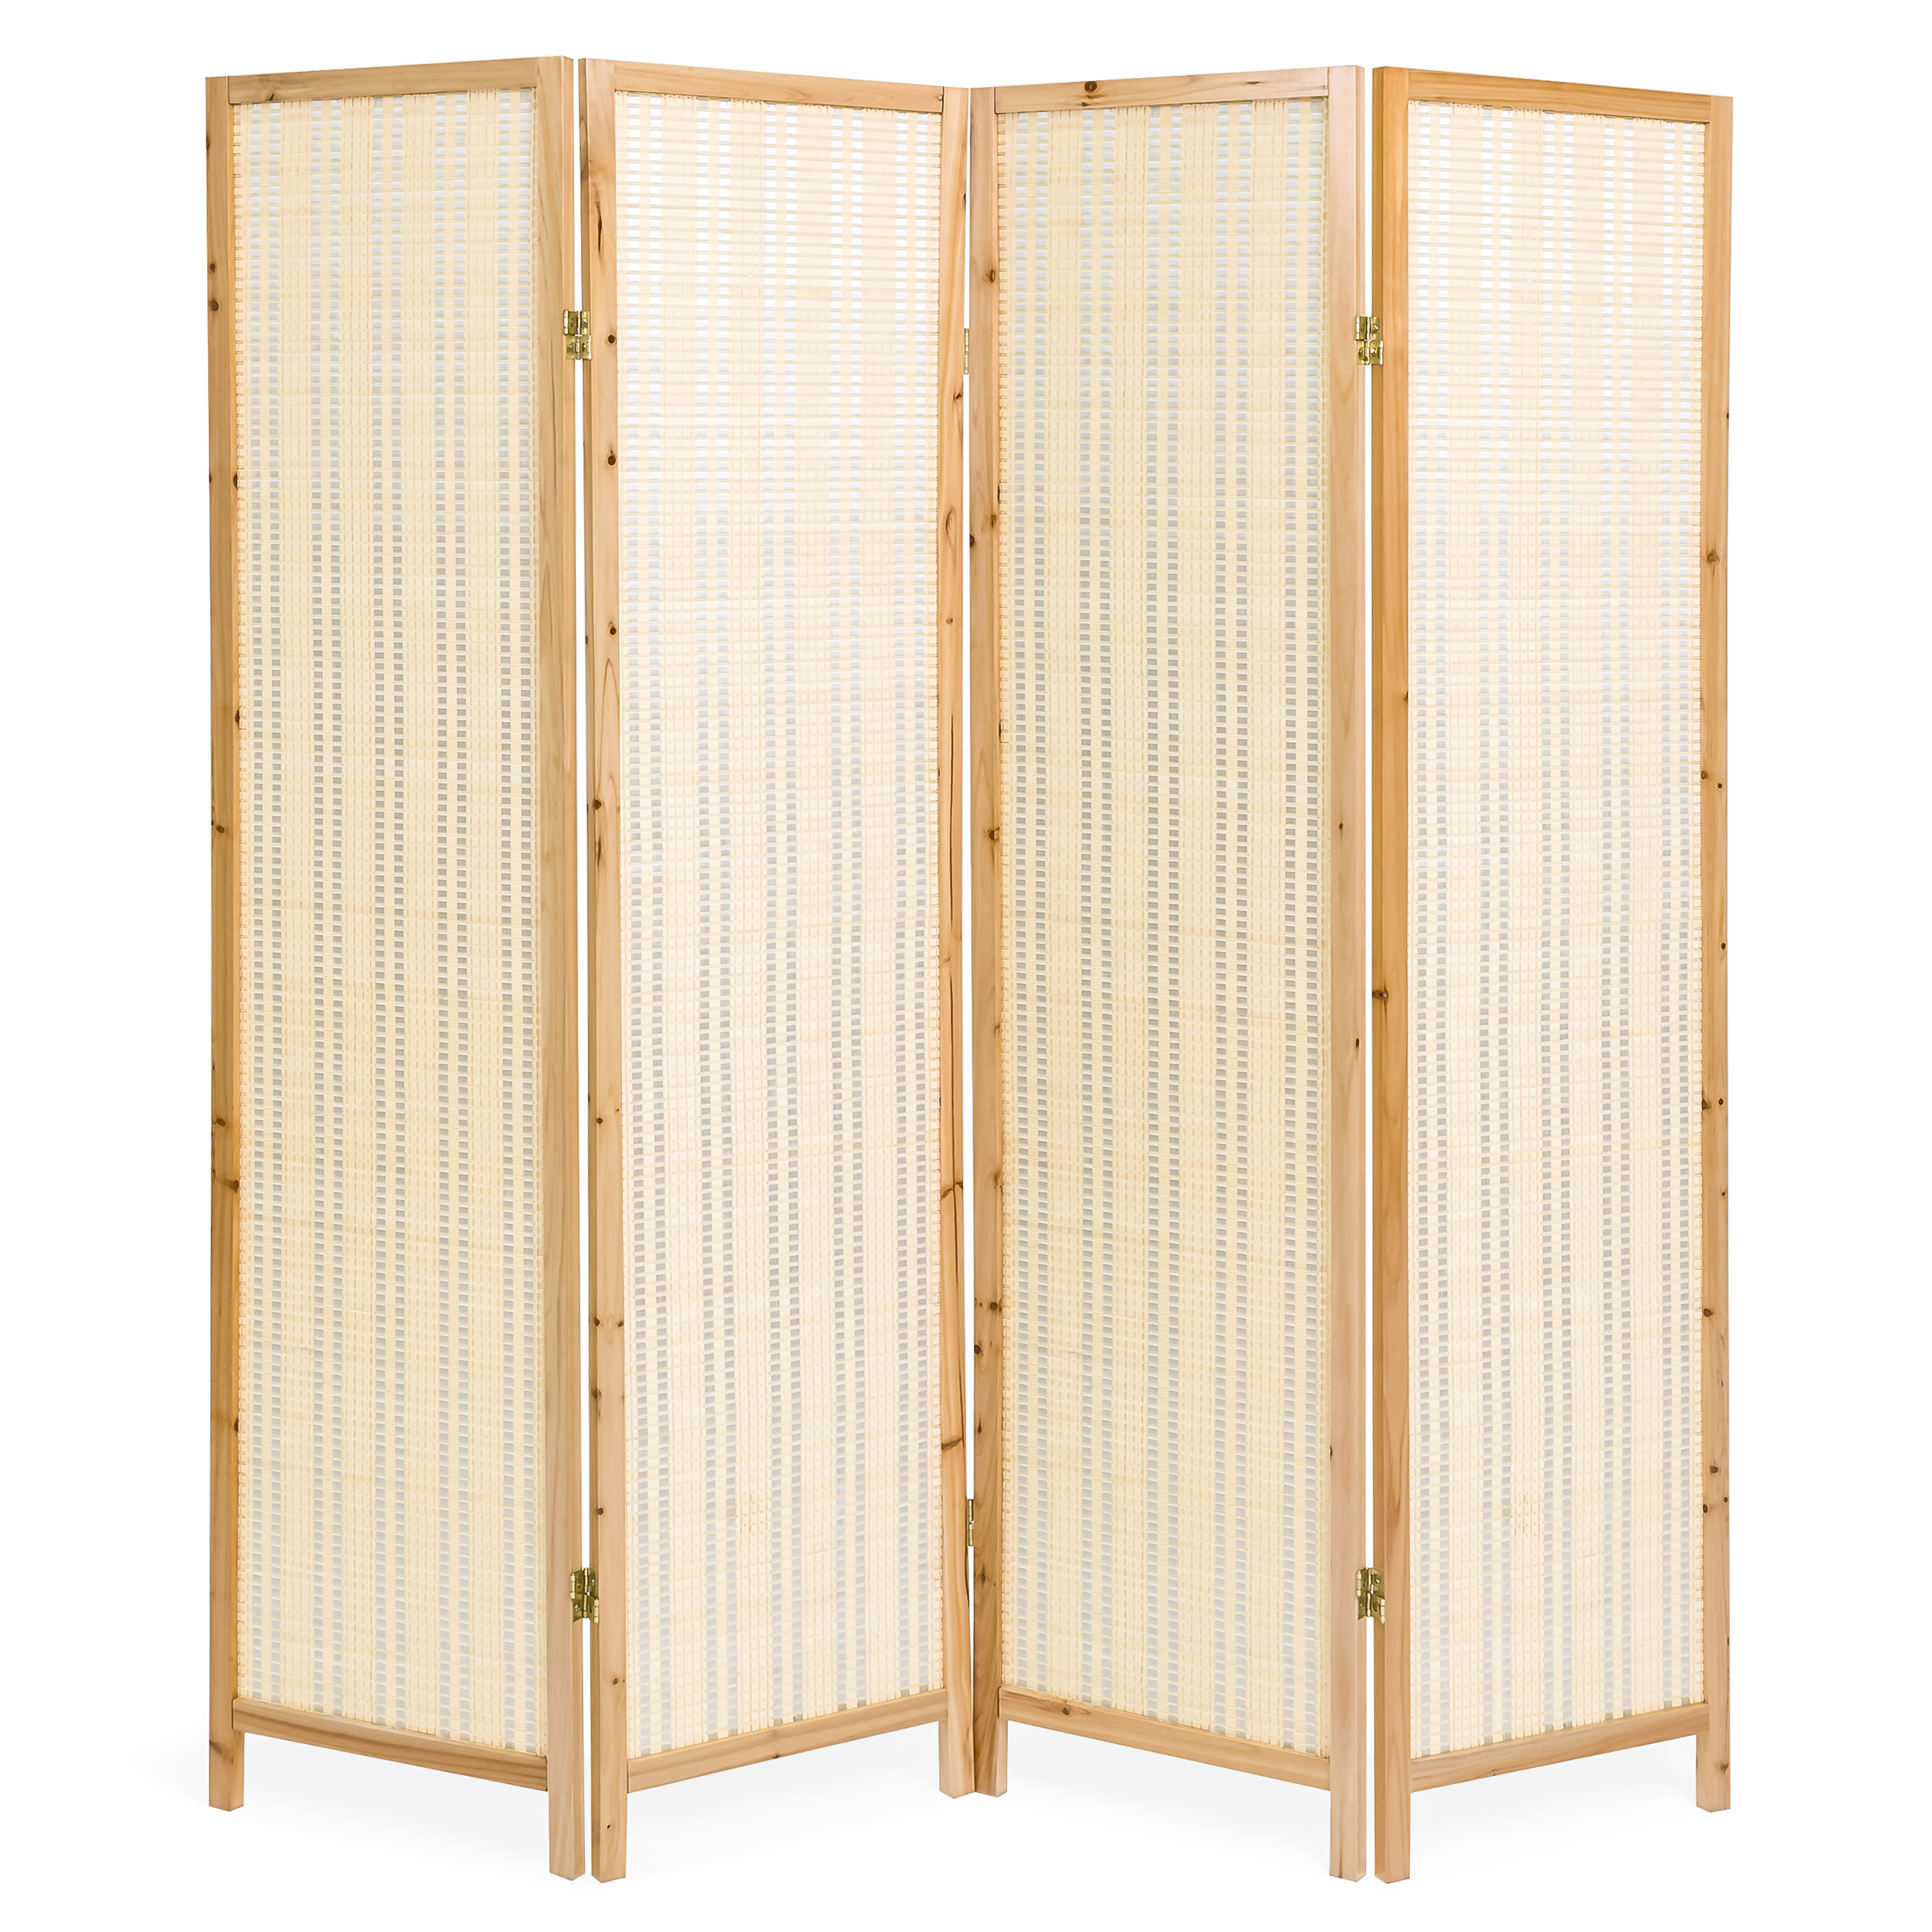 Decorative Room Dividers